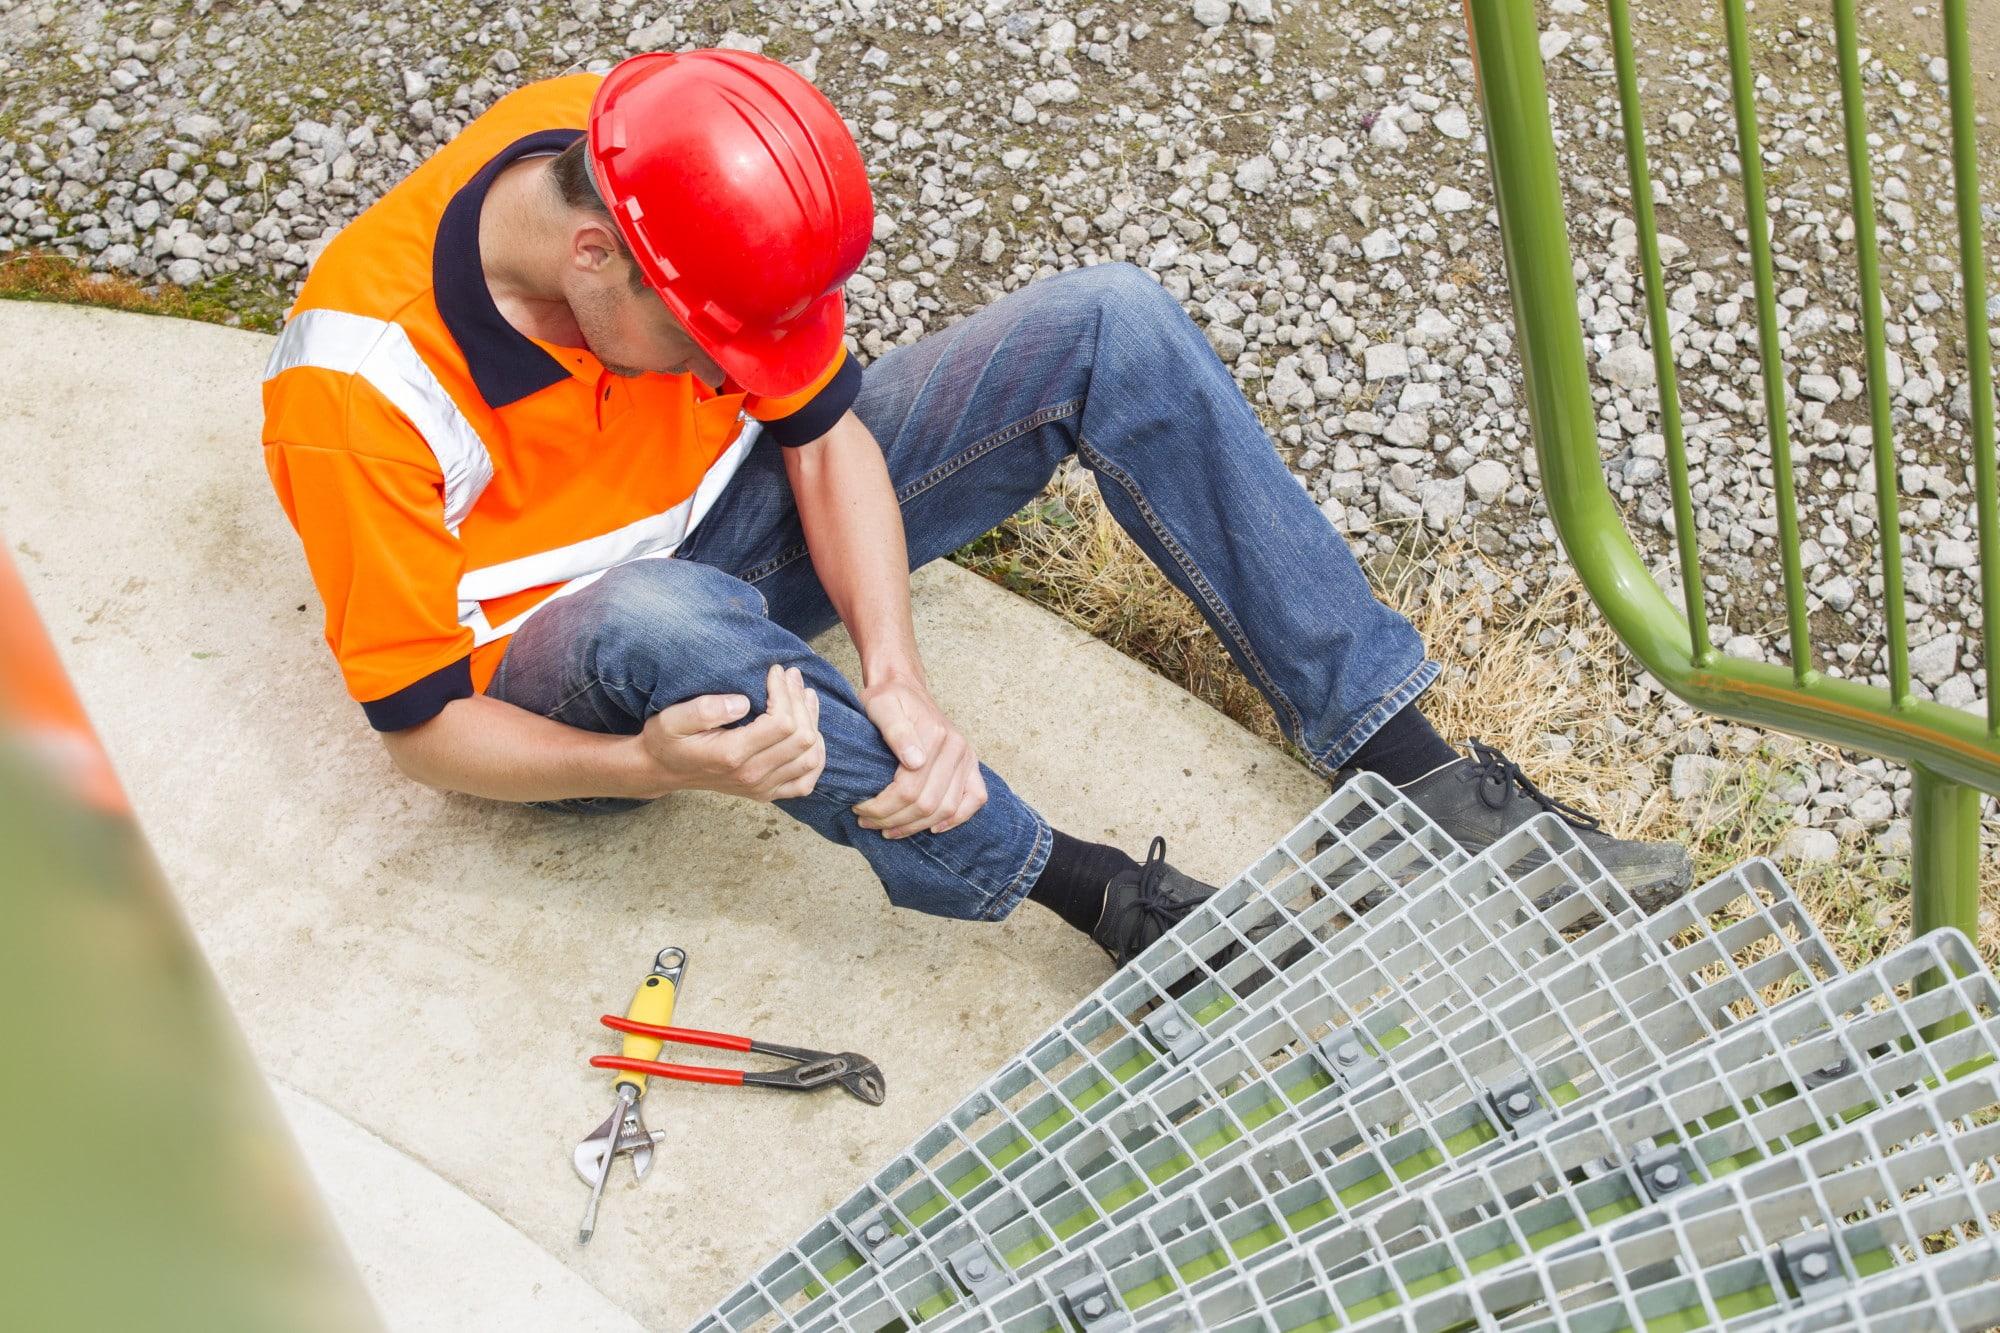 construction injury statistics